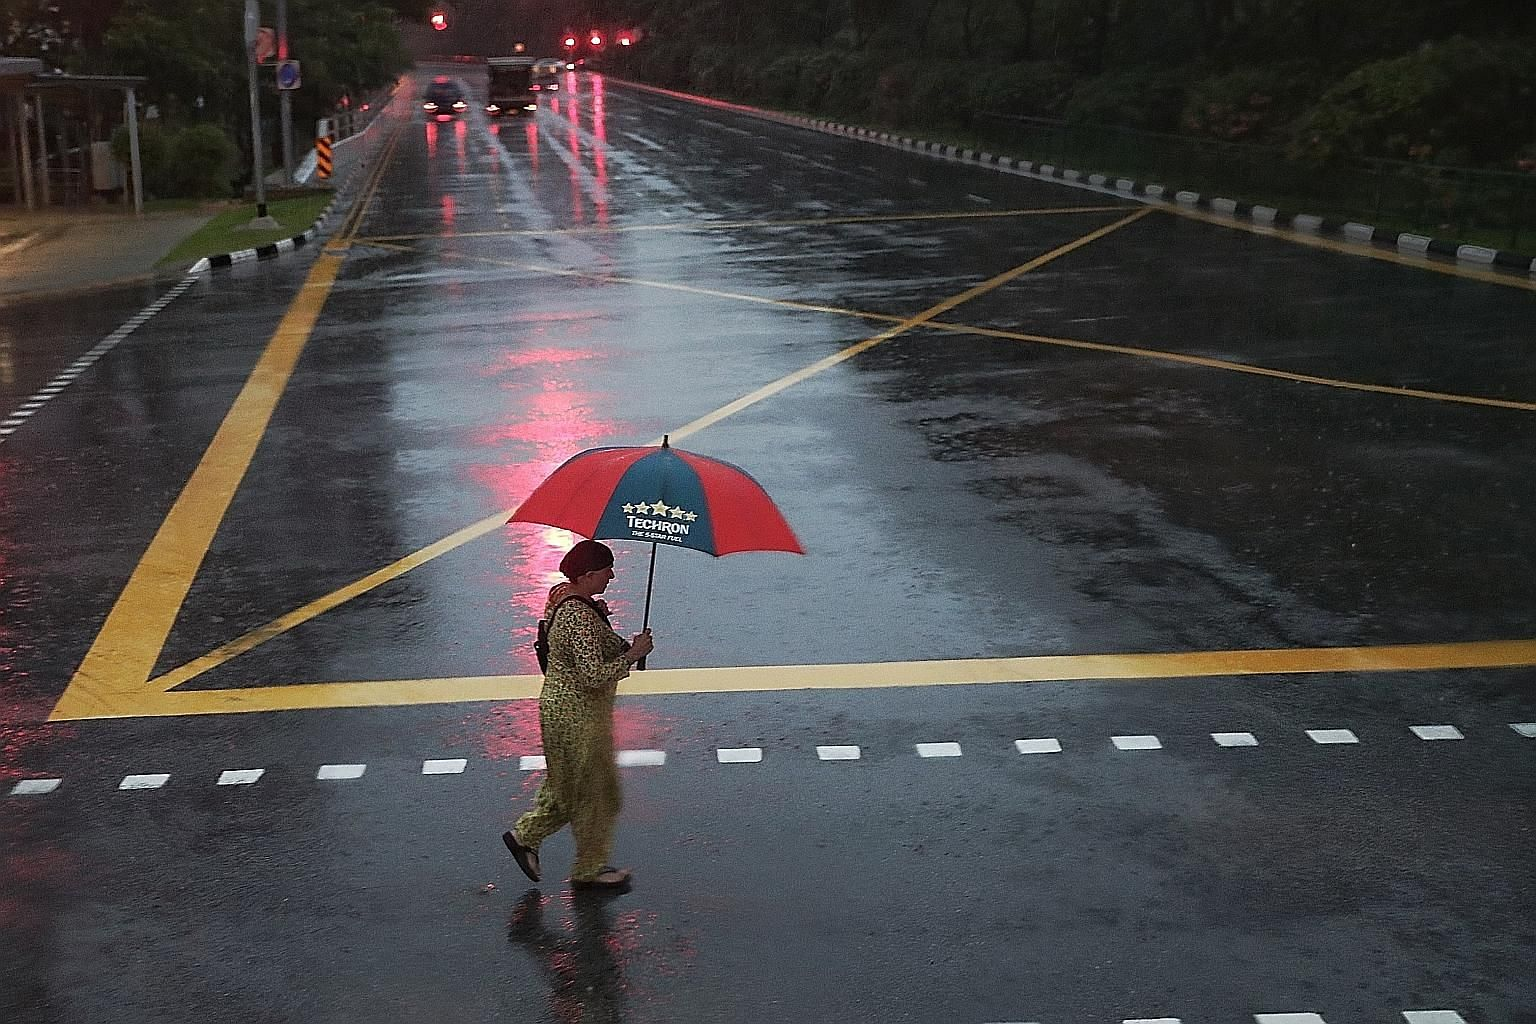 Overall rainfall for this month is expected to be well above average, with moderate to heavy thundery showers expected in the afternoon on eight to 10 days for the rest of the month, said the National Environment Agency's Meteorological Service Singa